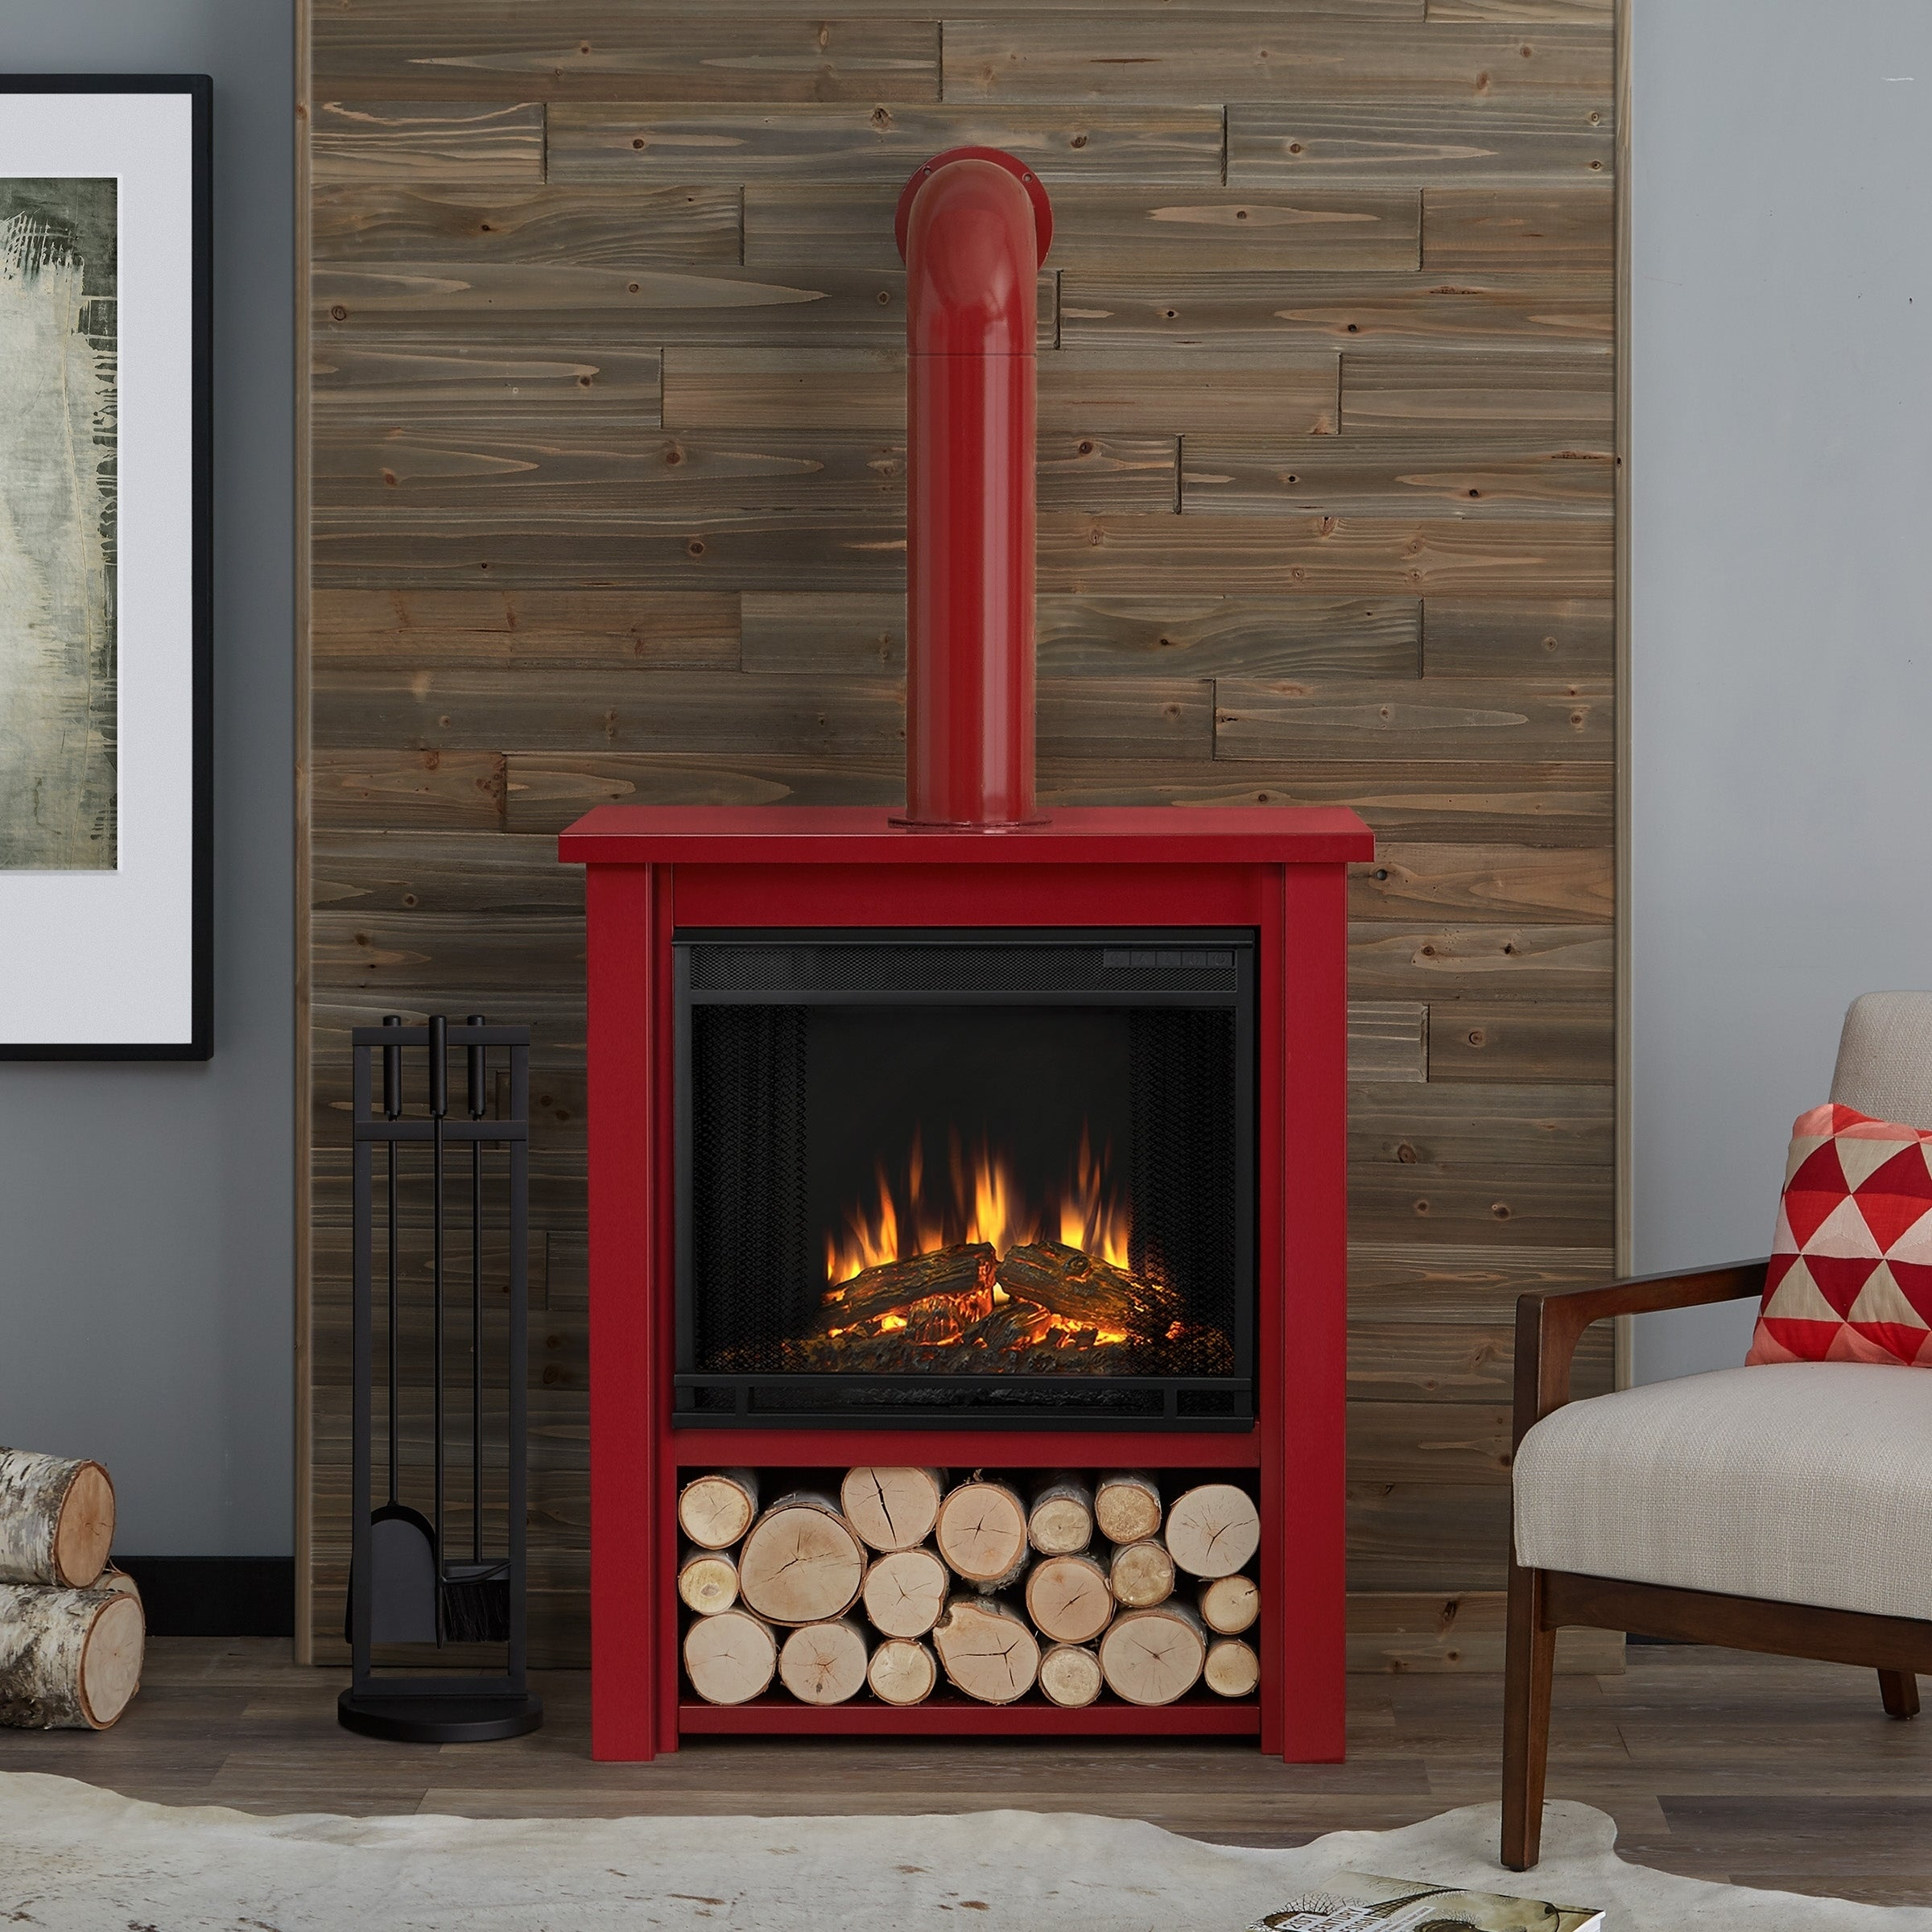 This electric fireplace uses a 1